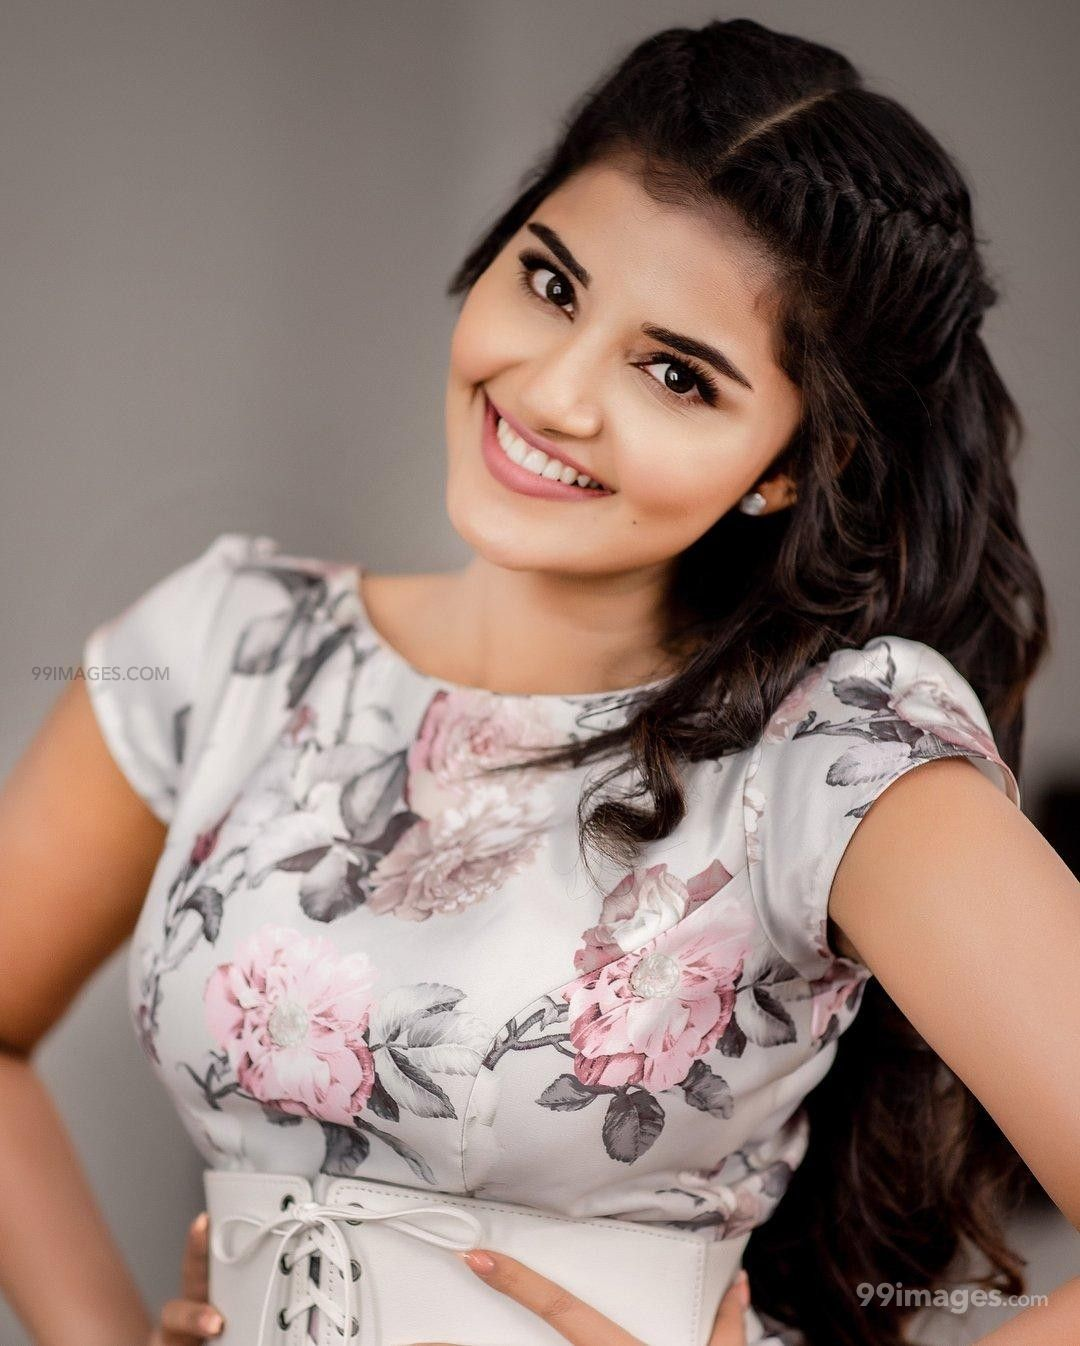 Anupama Parameswaran HD Wallpapers (Desktop Background / Android / iPhone) (1080p, 4k) (82269) - Anupama Parameswaran